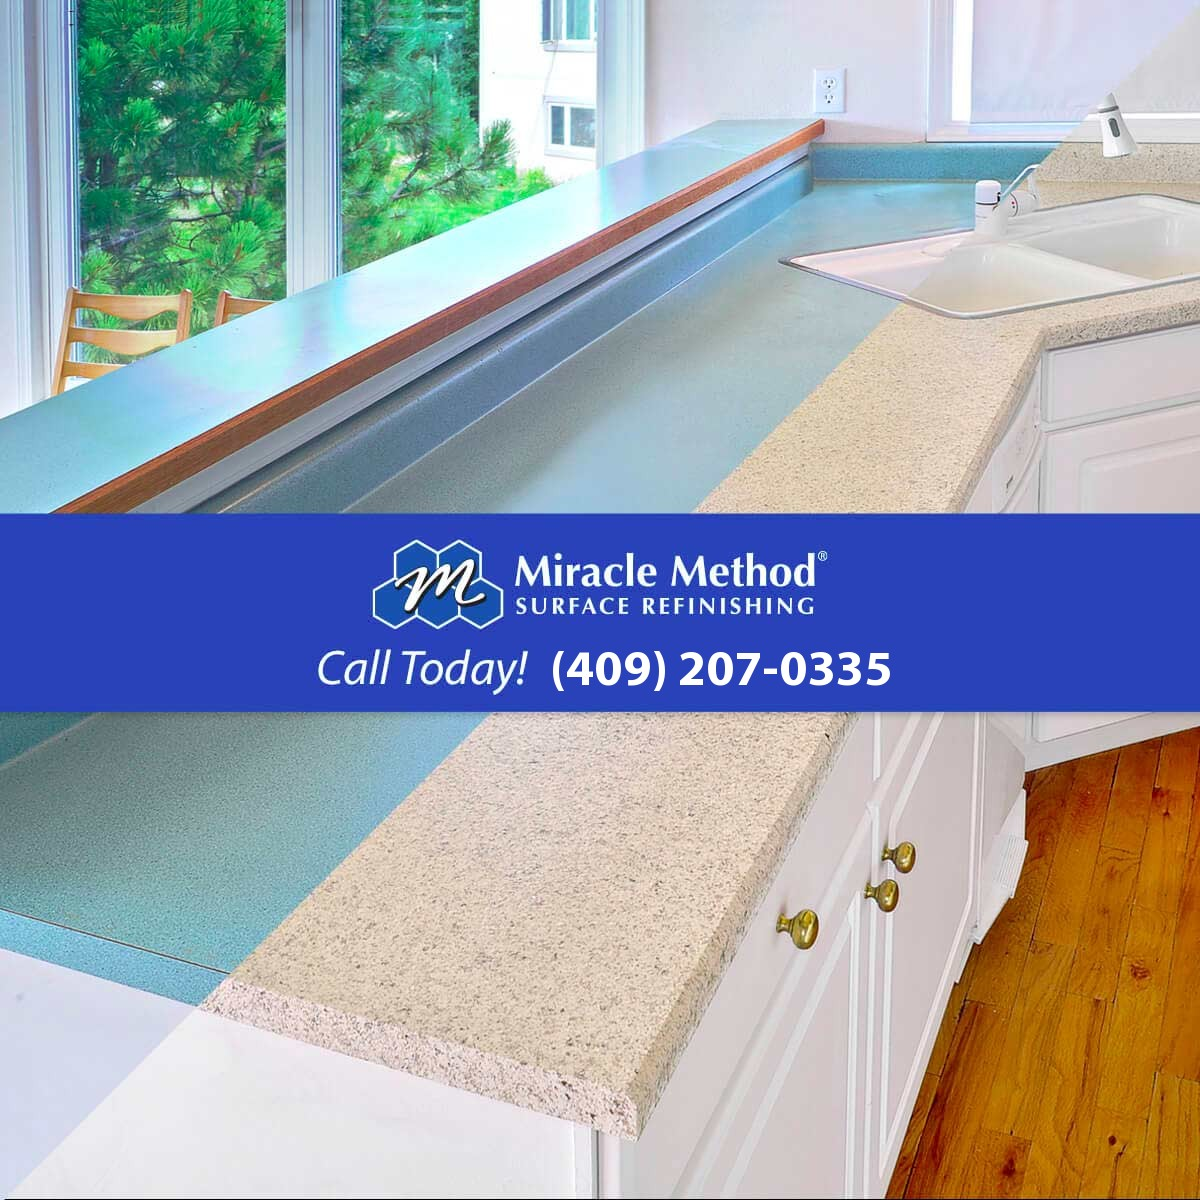 Orange TX Surface Refinishing  Repair  Miracle Method